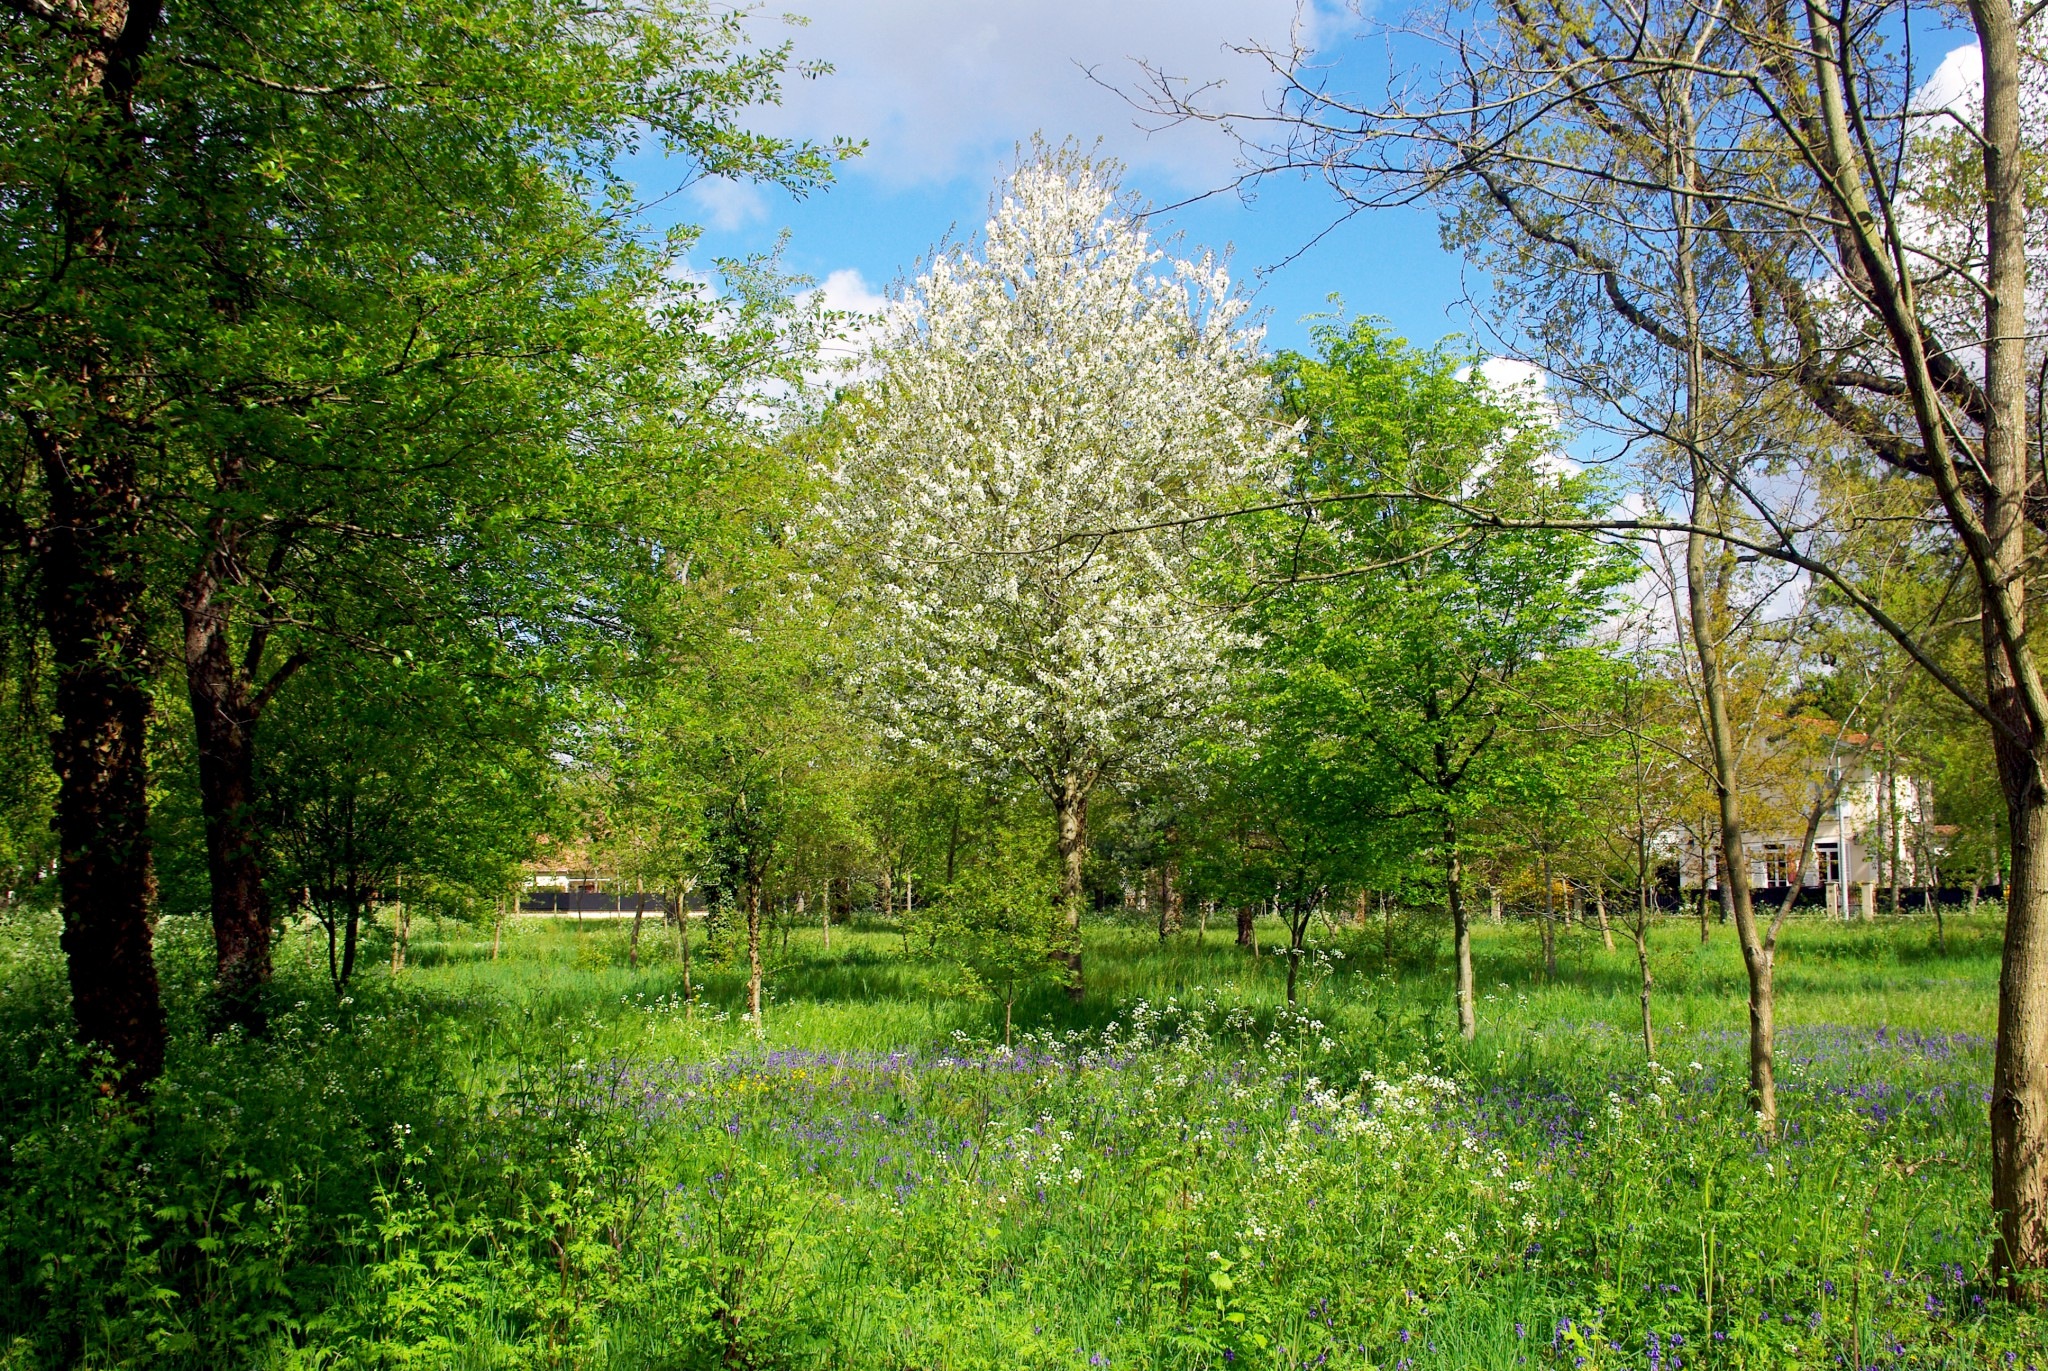 Tree in flowers in the Park of Maisons-Laffitte © French Moments